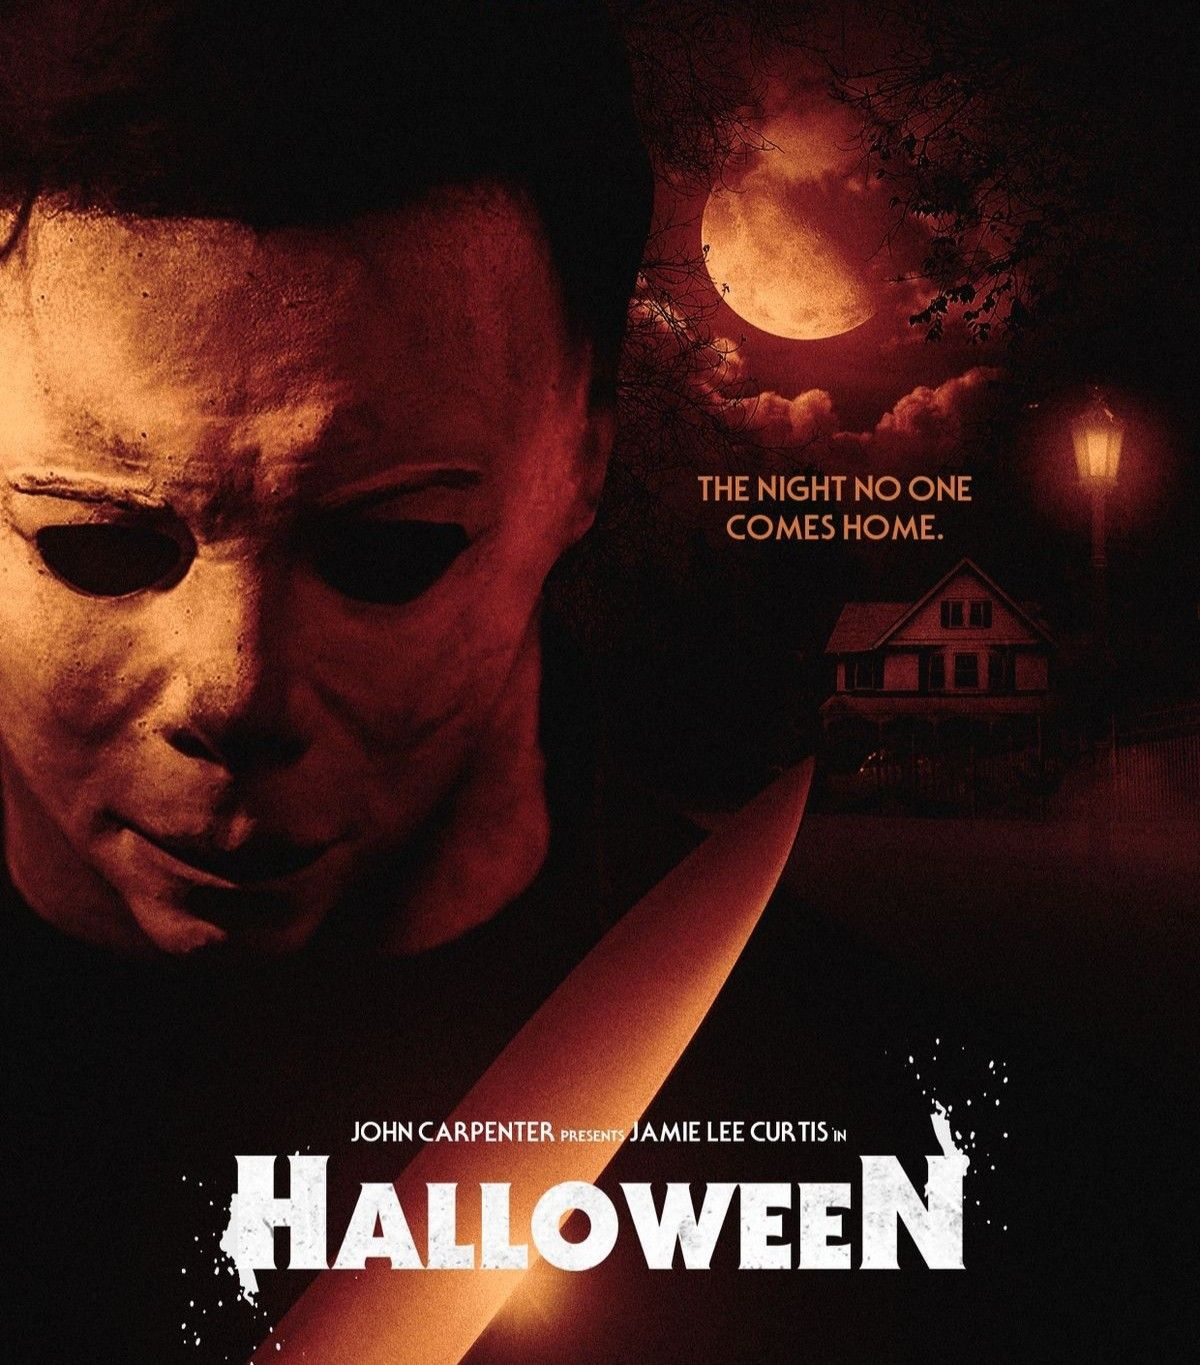 Pin by Brian Paschal on Halloween Movie Tribute in 2020